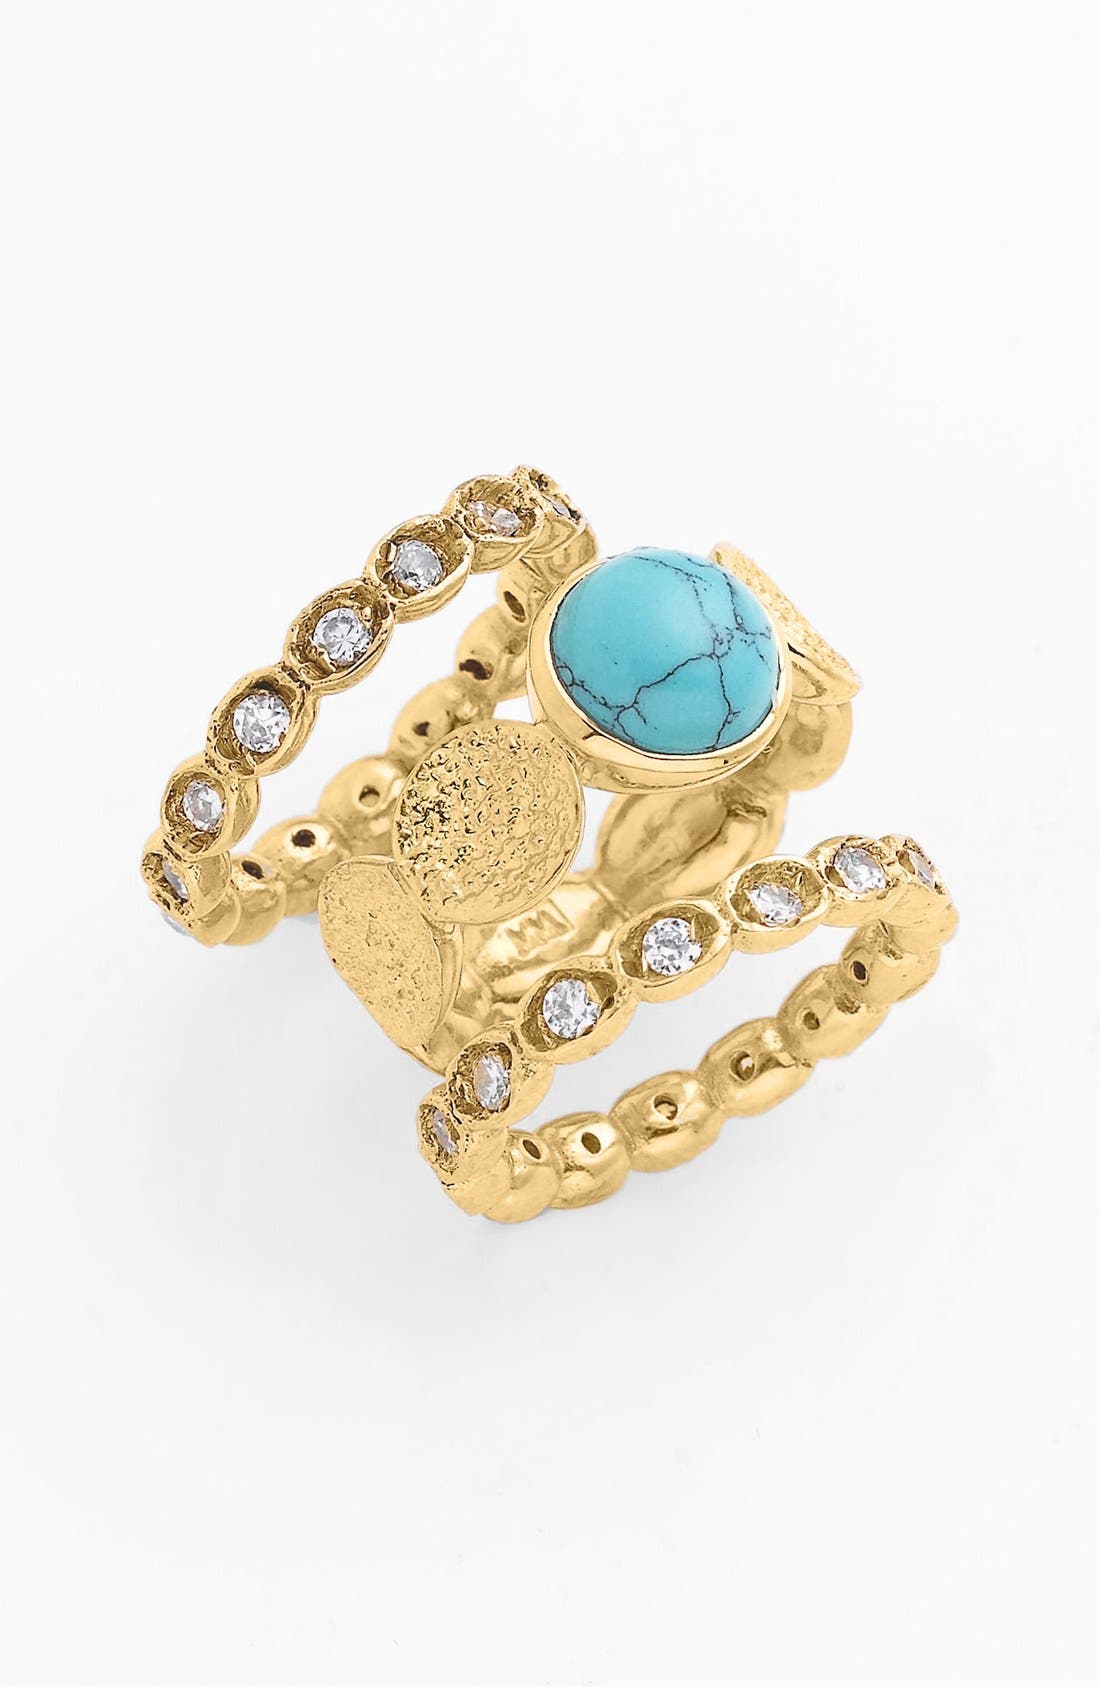 Main Image - Melinda Maria 'Montague' Stackable Rings (Set of 3) (Nordstrom Exclusive)